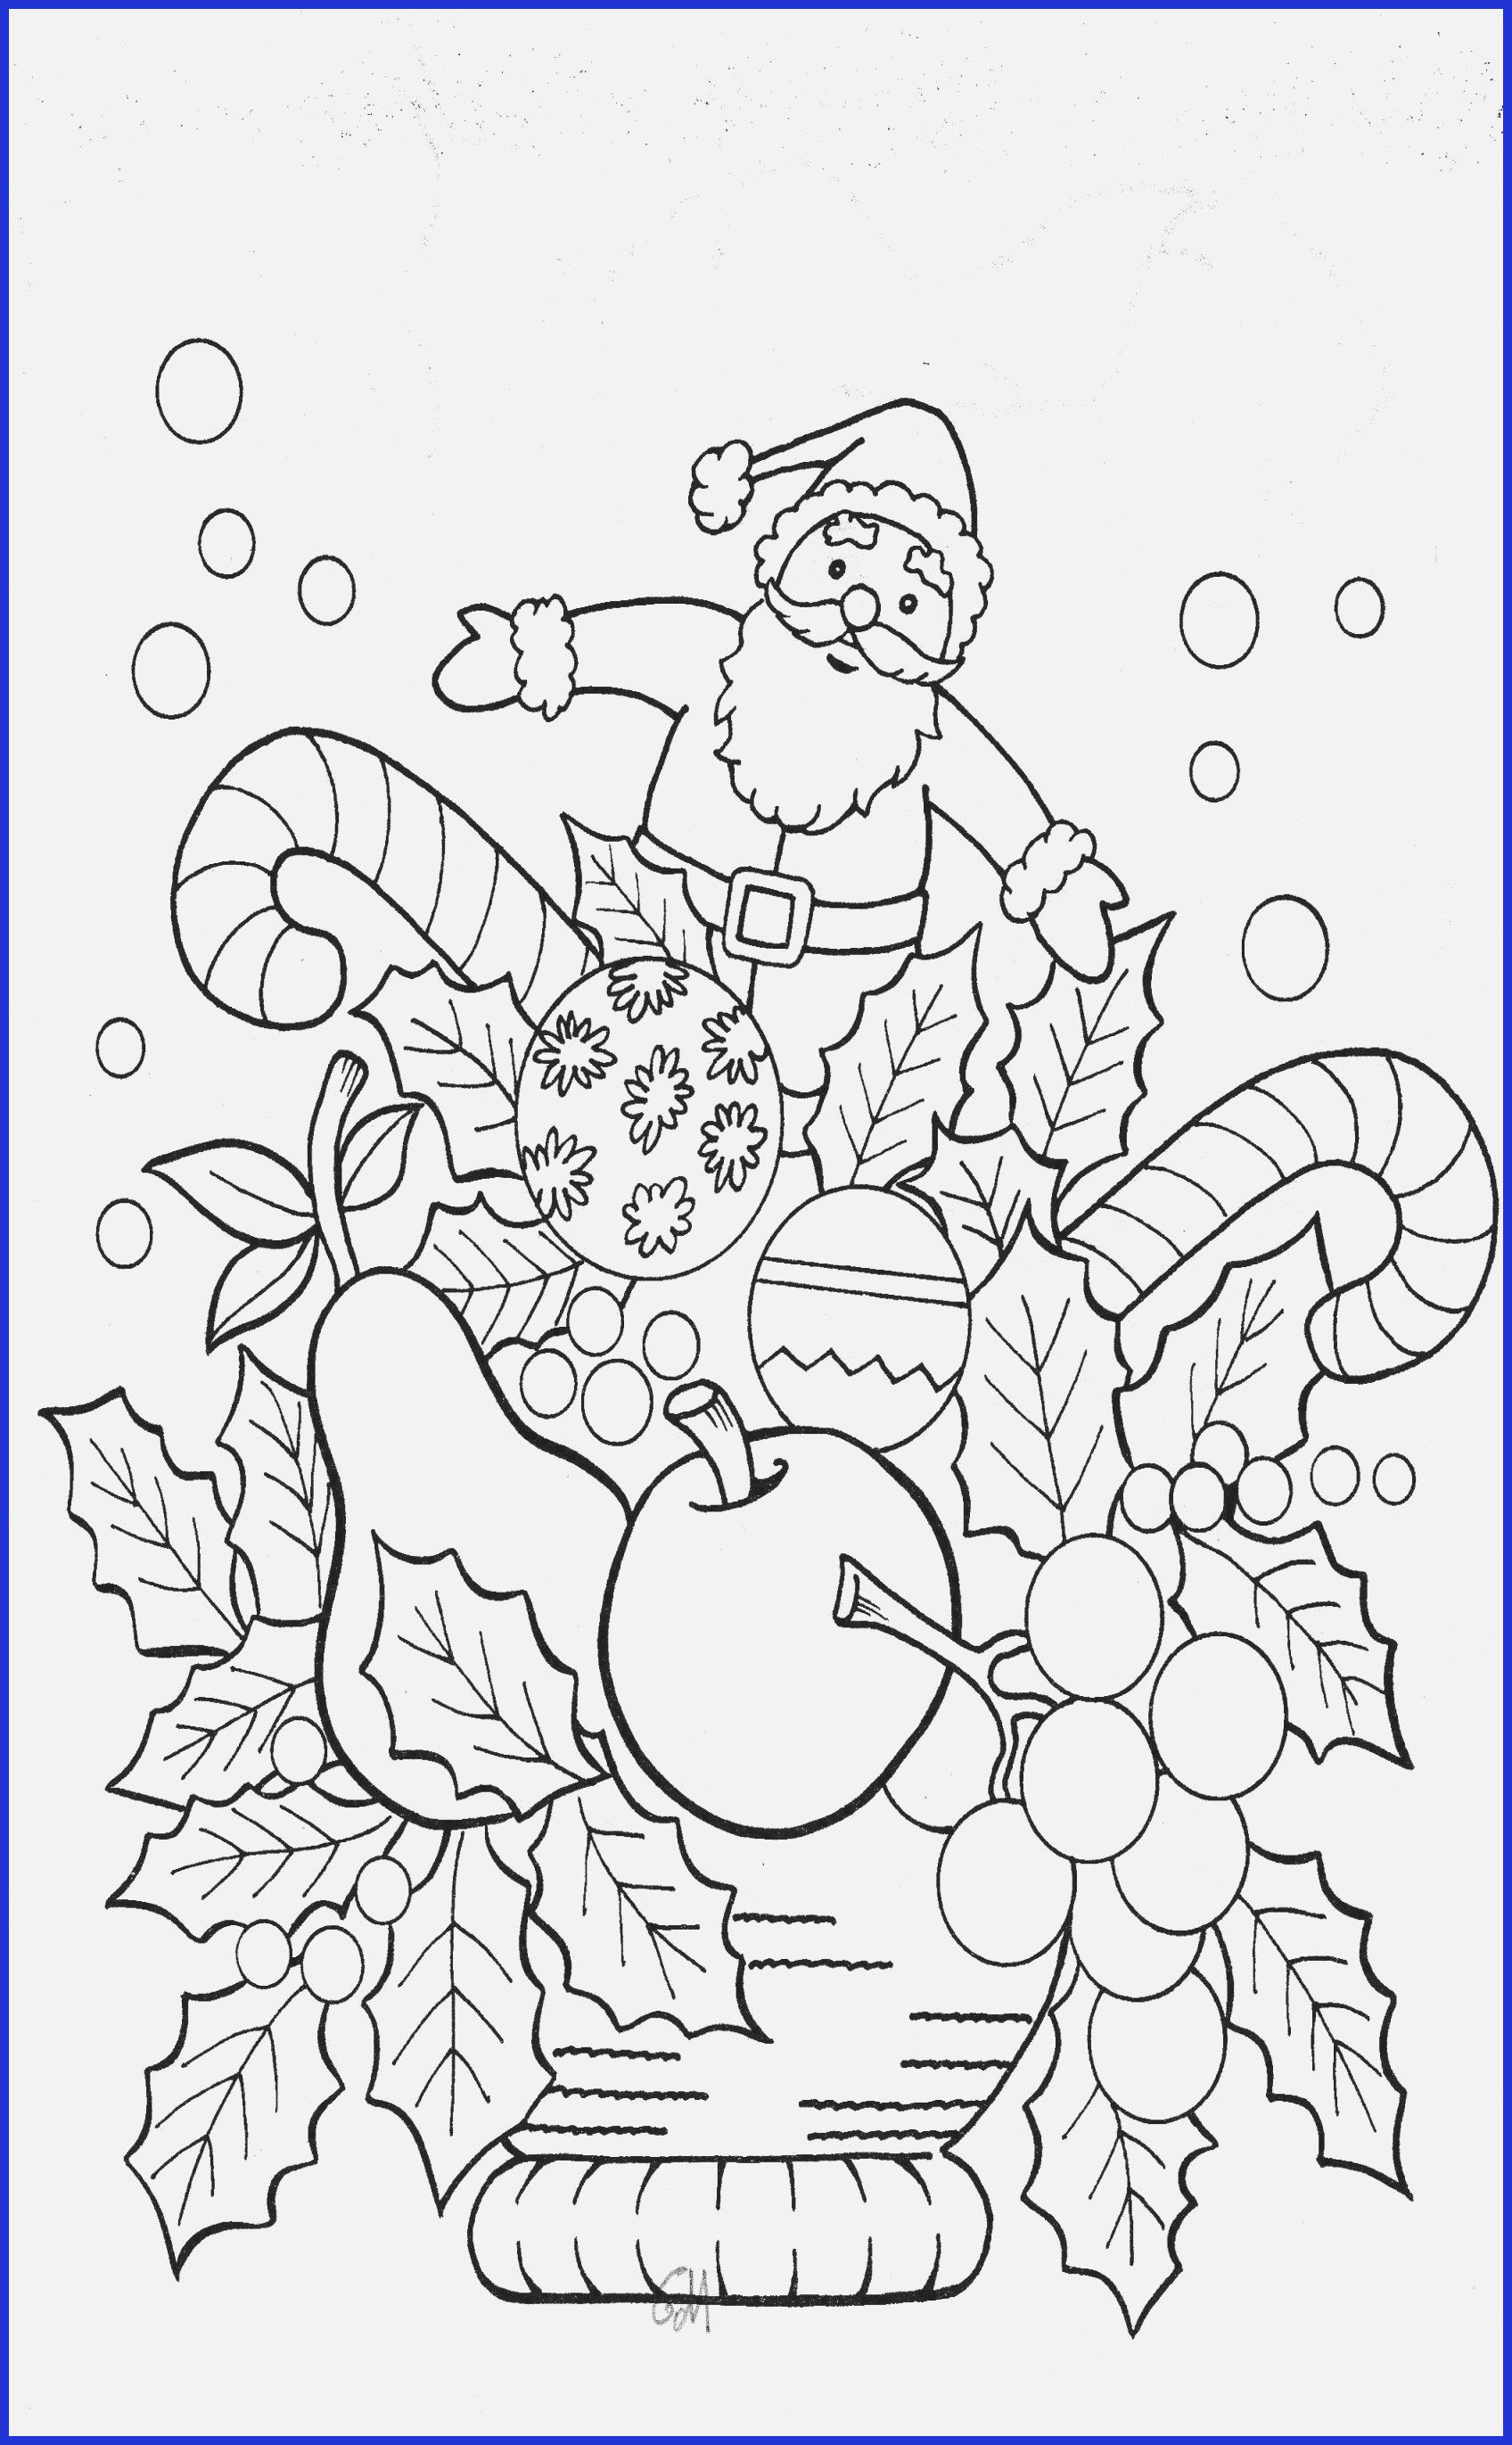 Exclusive Image Of Coloring Pages For 3 Year Olds Entitlementtrap Com Christmas Coloring Books School Coloring Pages Tree Coloring Page